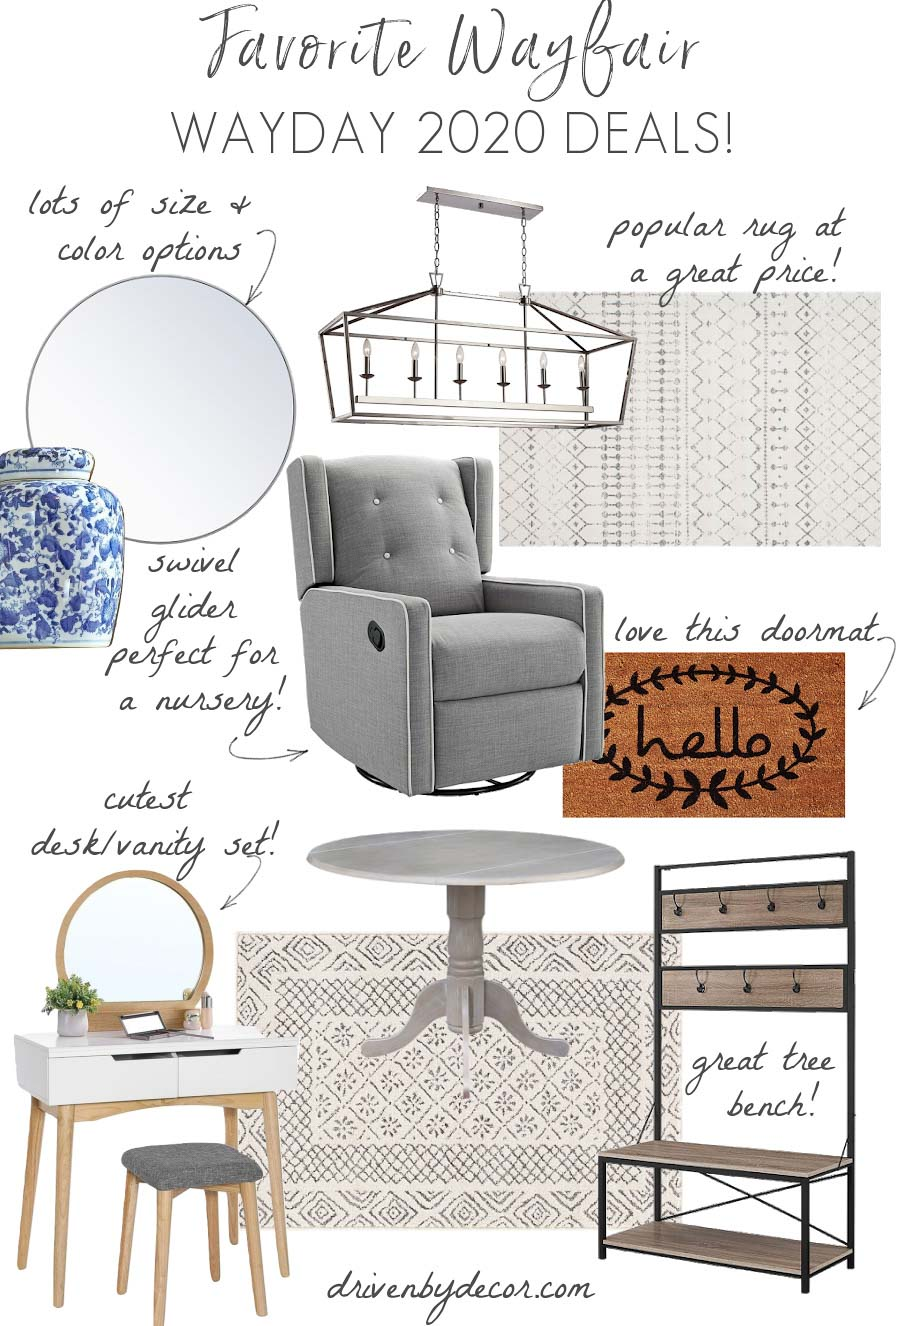 My favorite deals from Wayfair's annual Way Day sale!